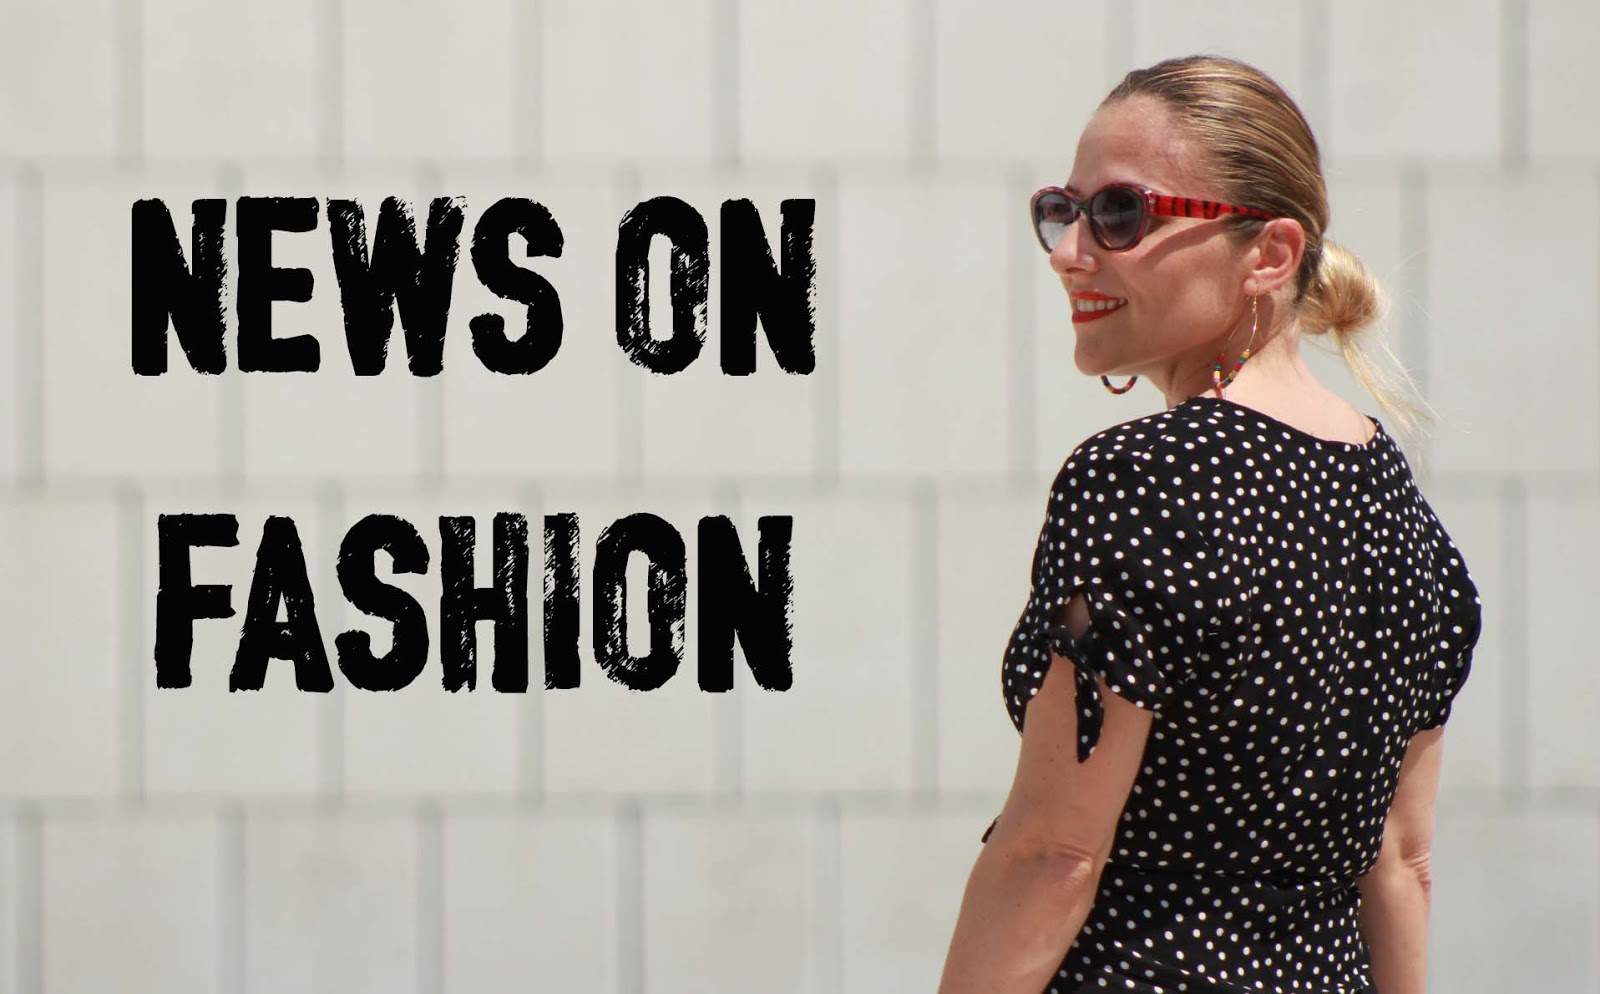 Eniwhere Fashion - News on Fashion - August 2018